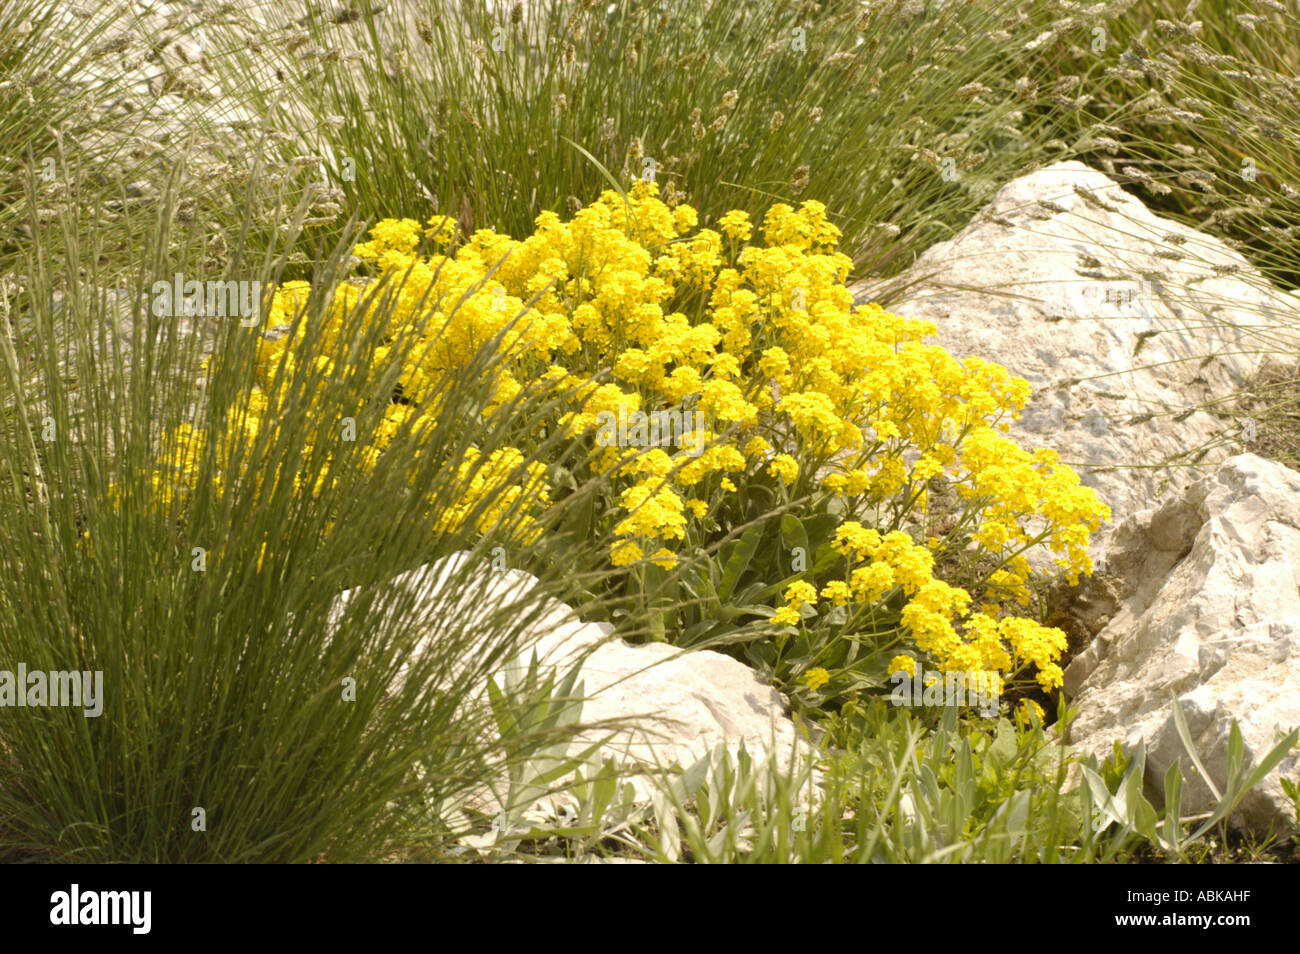 Carpet of yellow gold flowers of alpine flowers basket of gold stock carpet of yellow gold flowers of alpine flowers basket of gold brassicaceae alyssum saxatile mightylinksfo